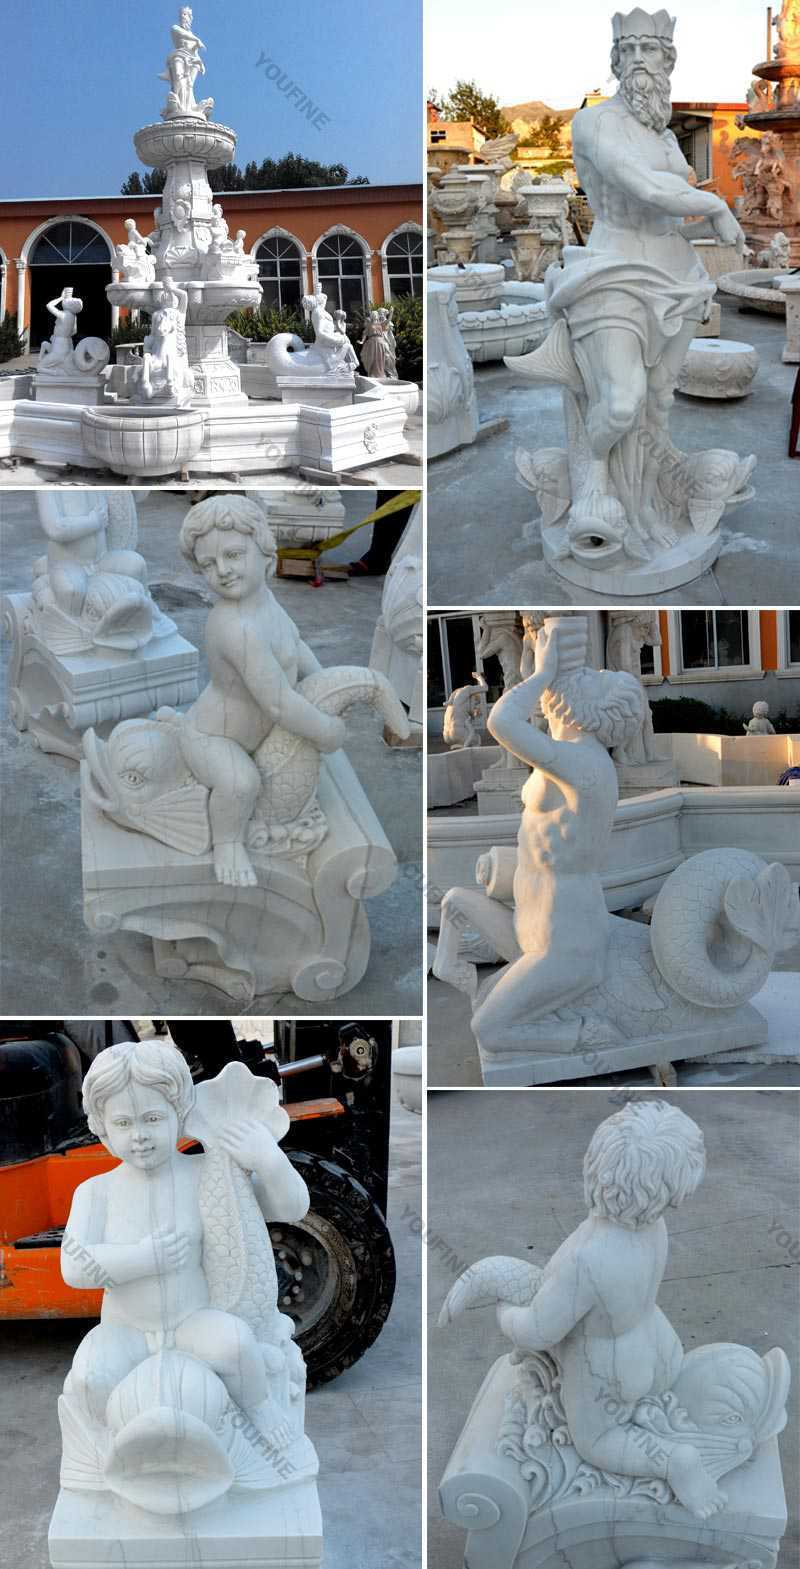 Large Outdoor White Marble Tiered Statuary Fountain